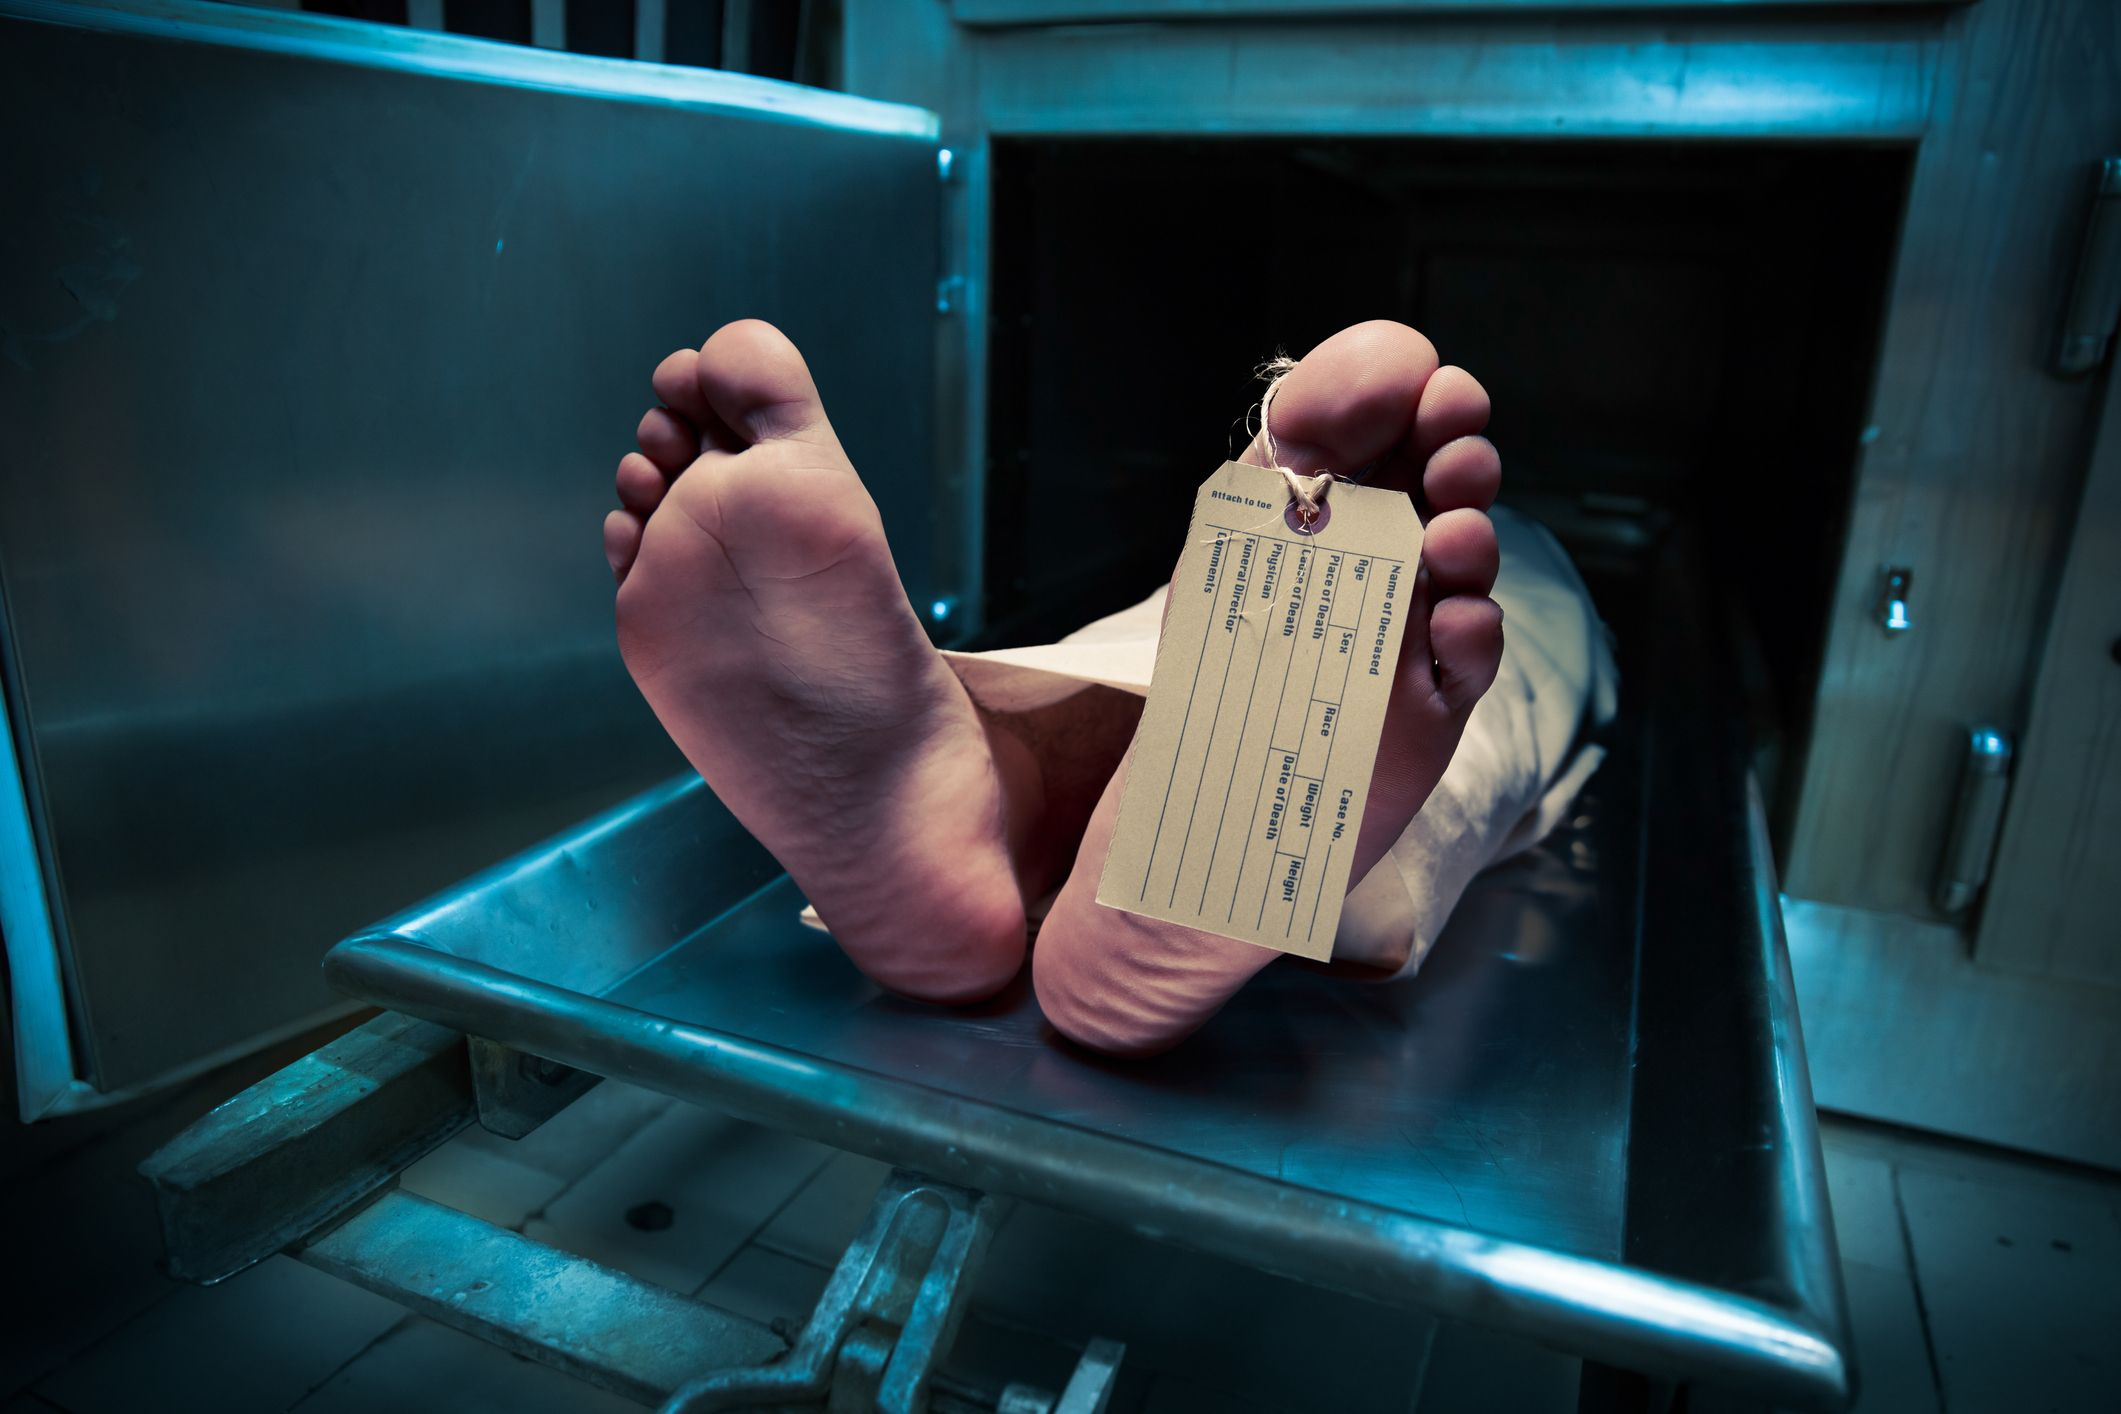 'Dead' woman comes back to life in morgue fridge